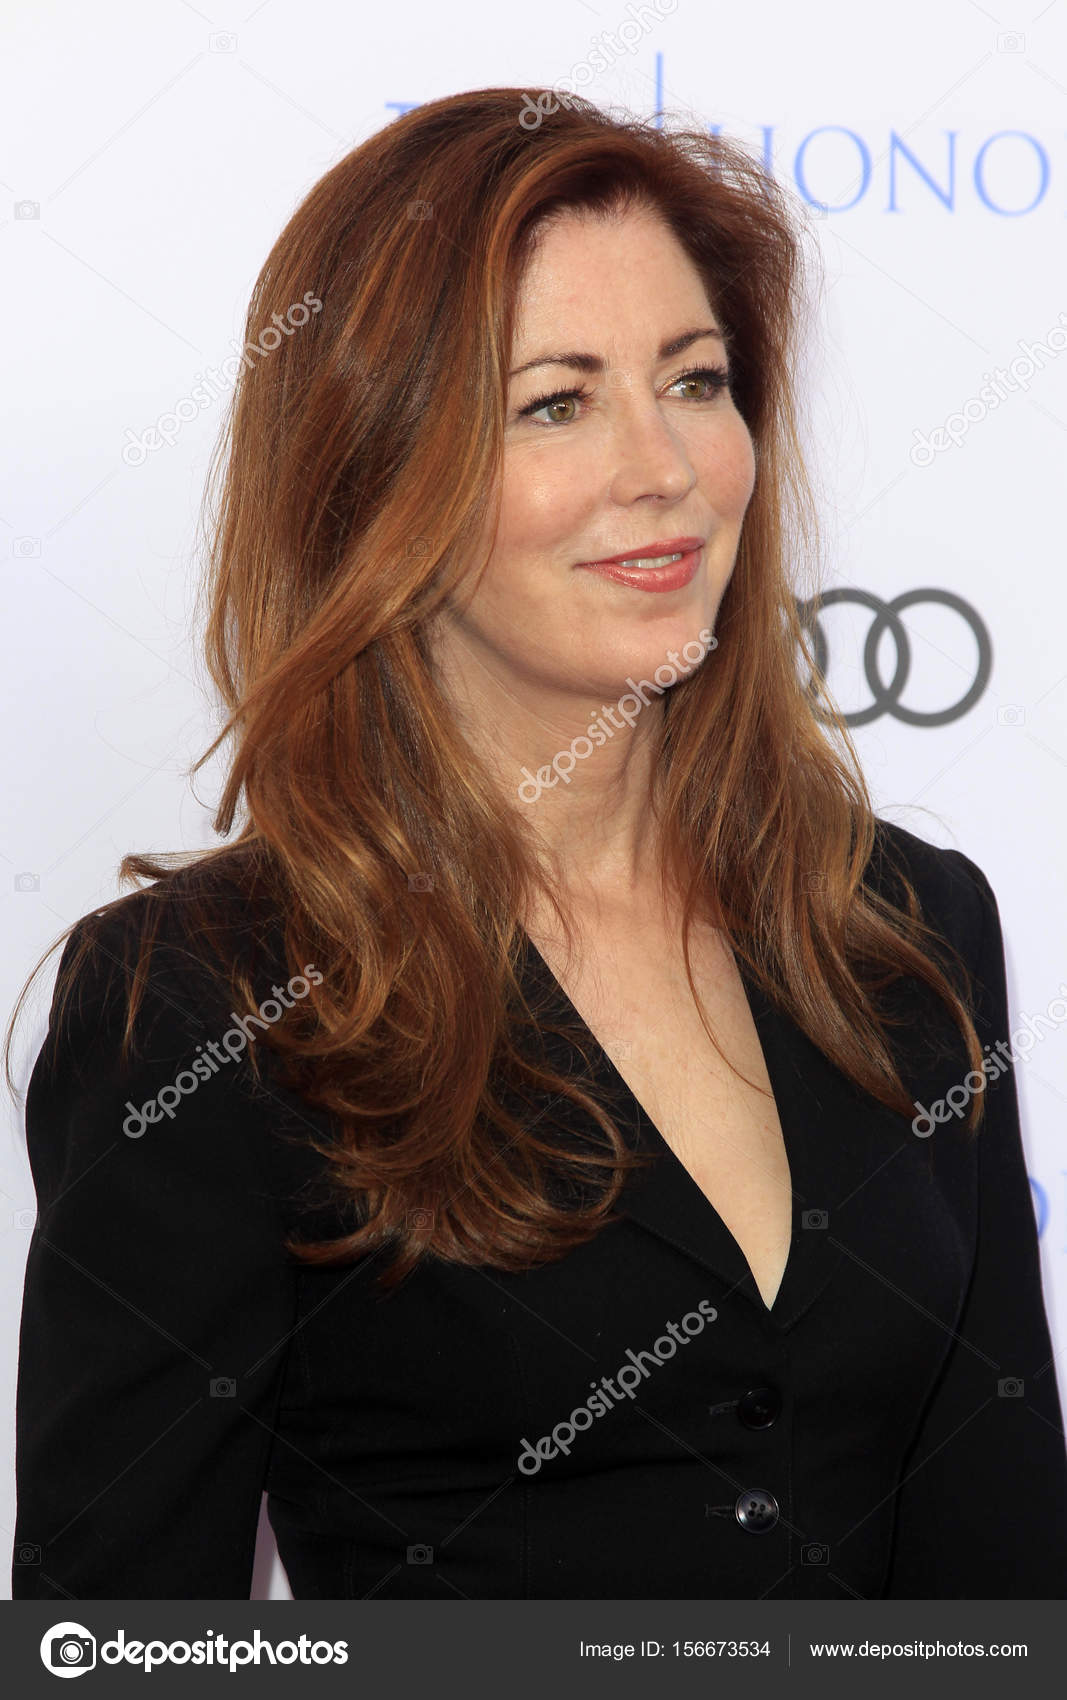 ICloud Dana Delany naked (31 photo), Tits, Hot, Instagram, braless 2017